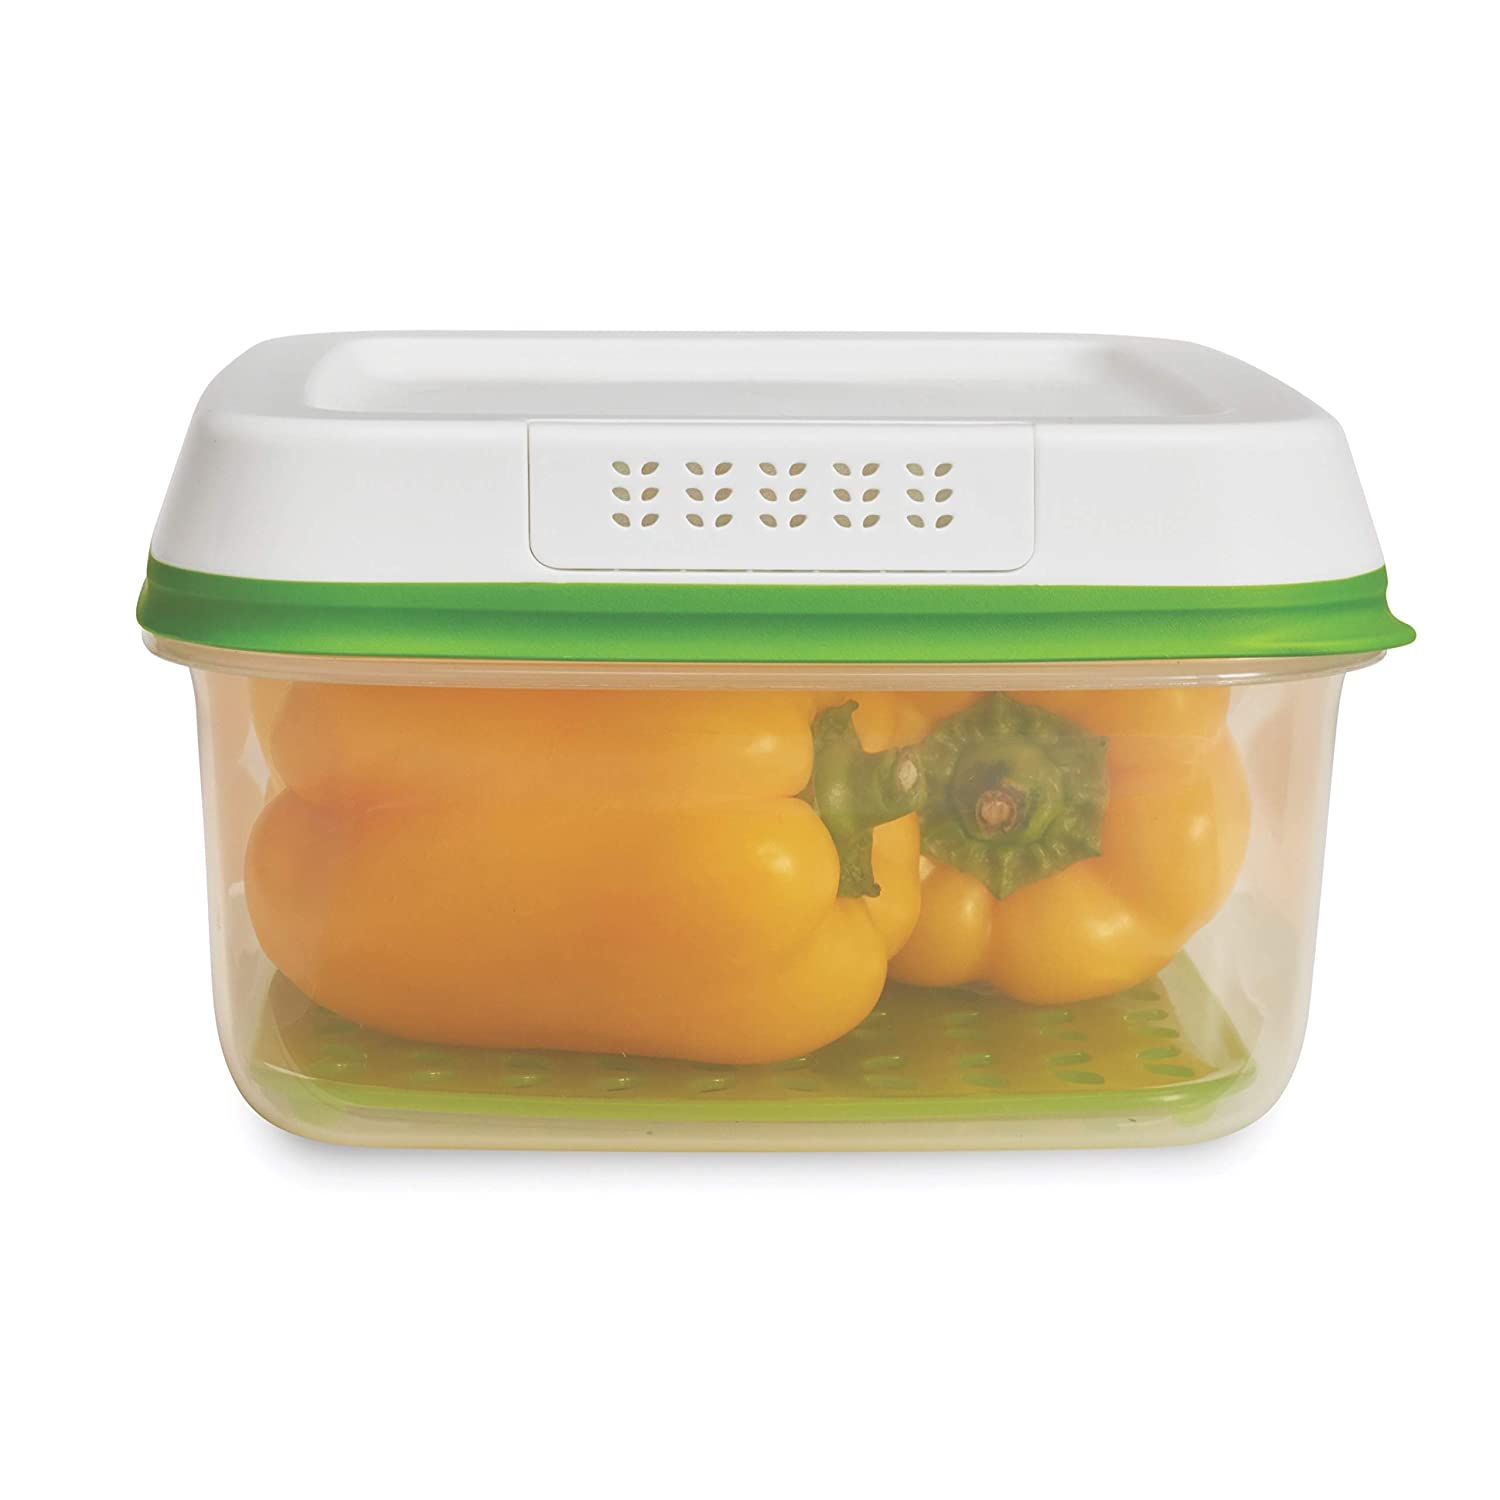 Rubbermaid FreshWorks Produce Saver Food Storage Container, Large Square, 11.1 Cup, Green 1996984